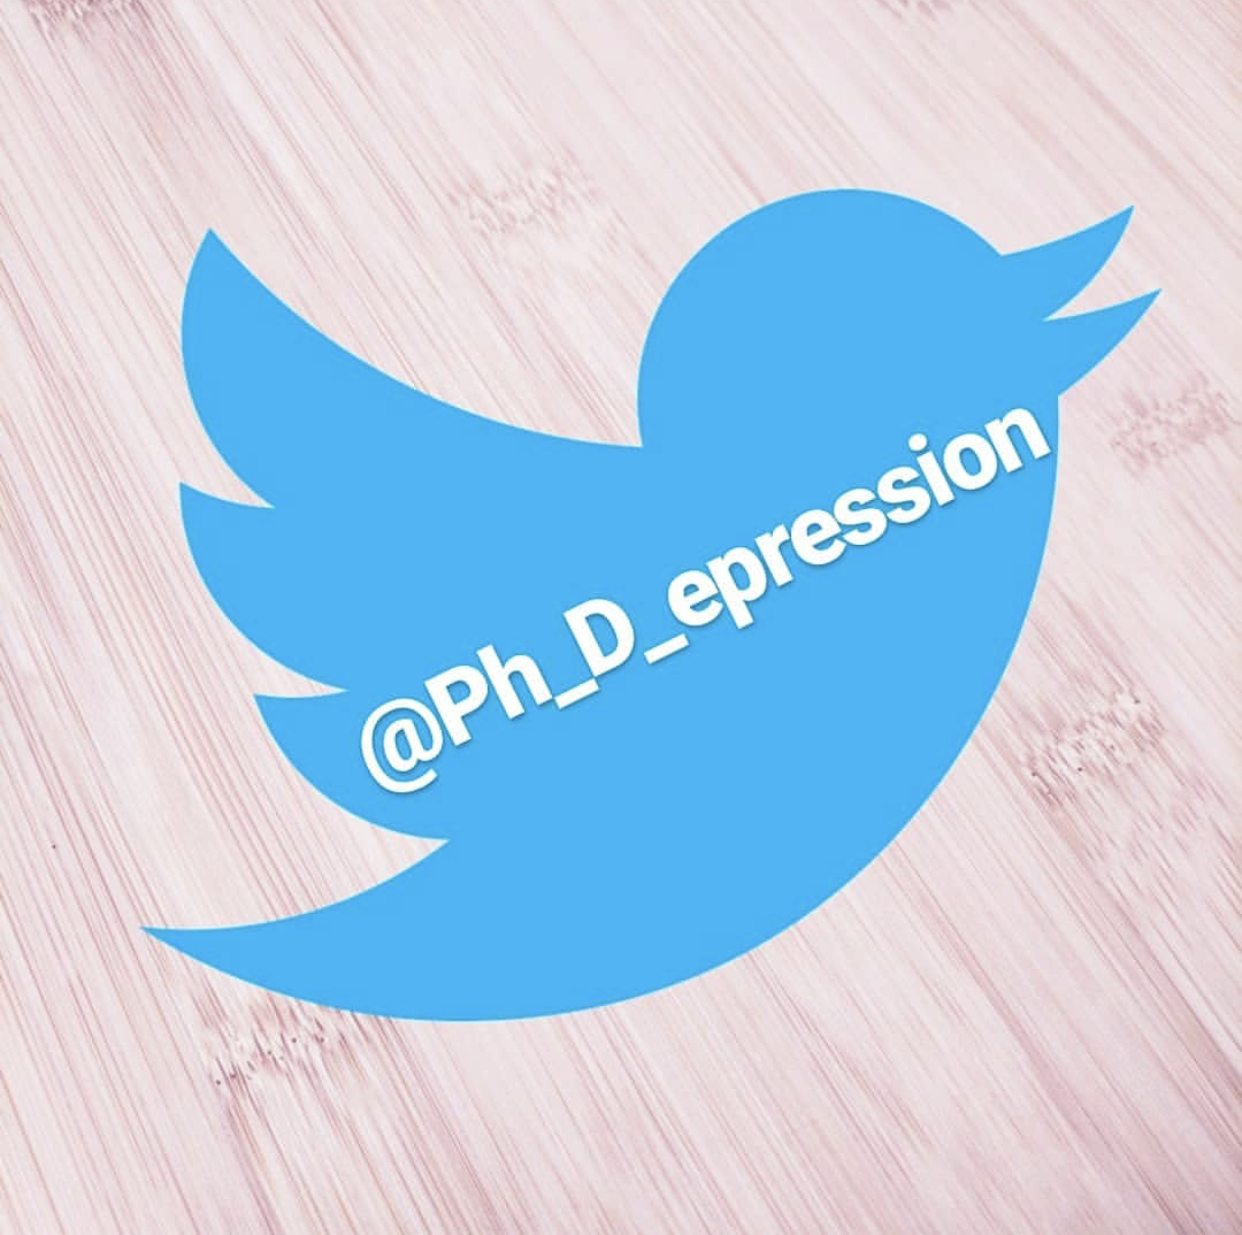 PhDepression - A a collaborative community talking about mental health in graduate school. You are not alone! We support creative, critical and independent thinkers struggling with mental health, through honest stories from fellow PhDs and well-being tips, tools and services.